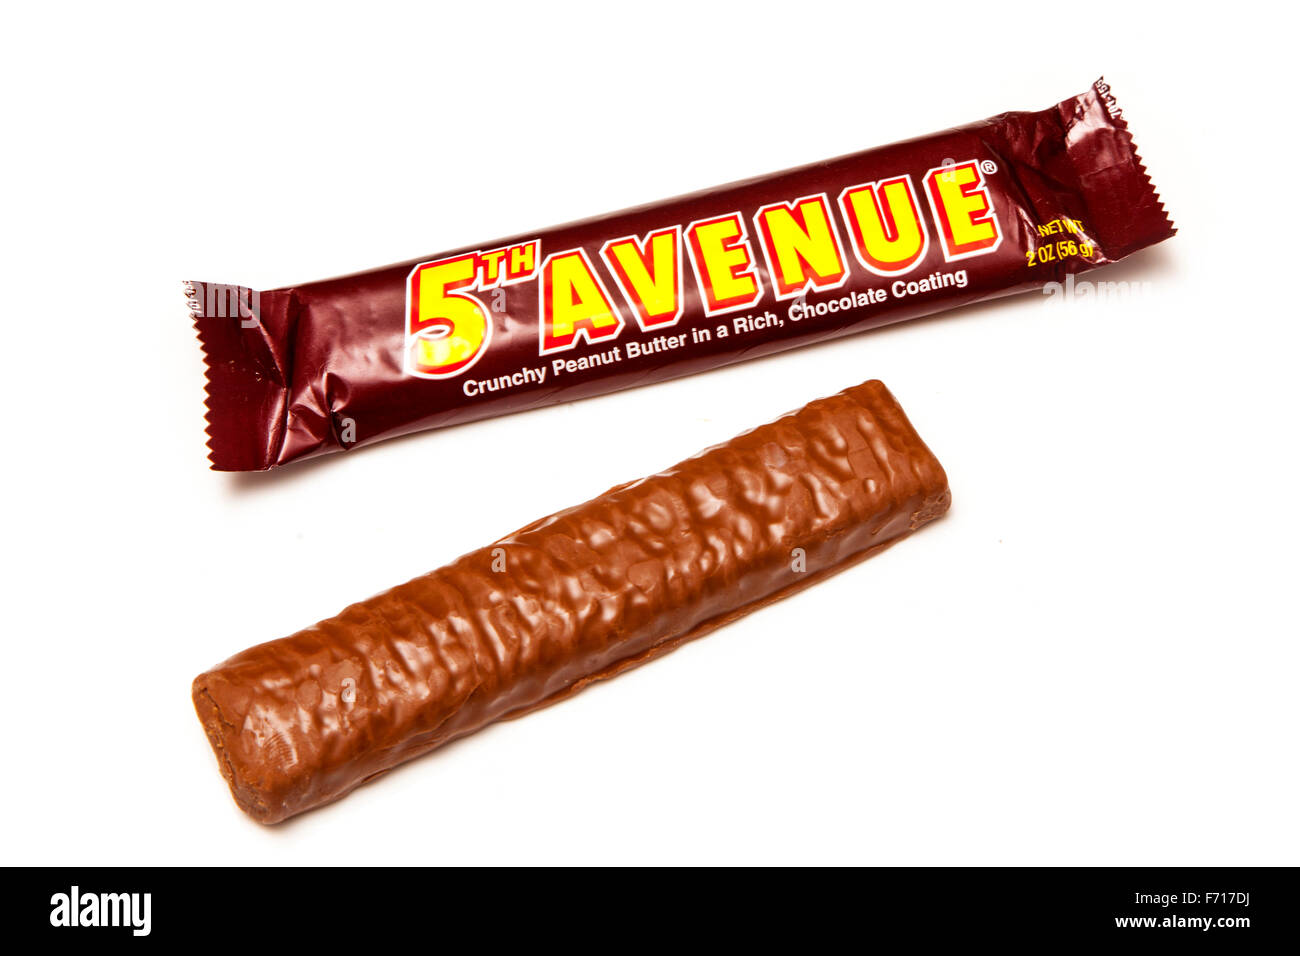 5th Avenue American candy or chocolate bar isolated on a white studio background. - Stock Image